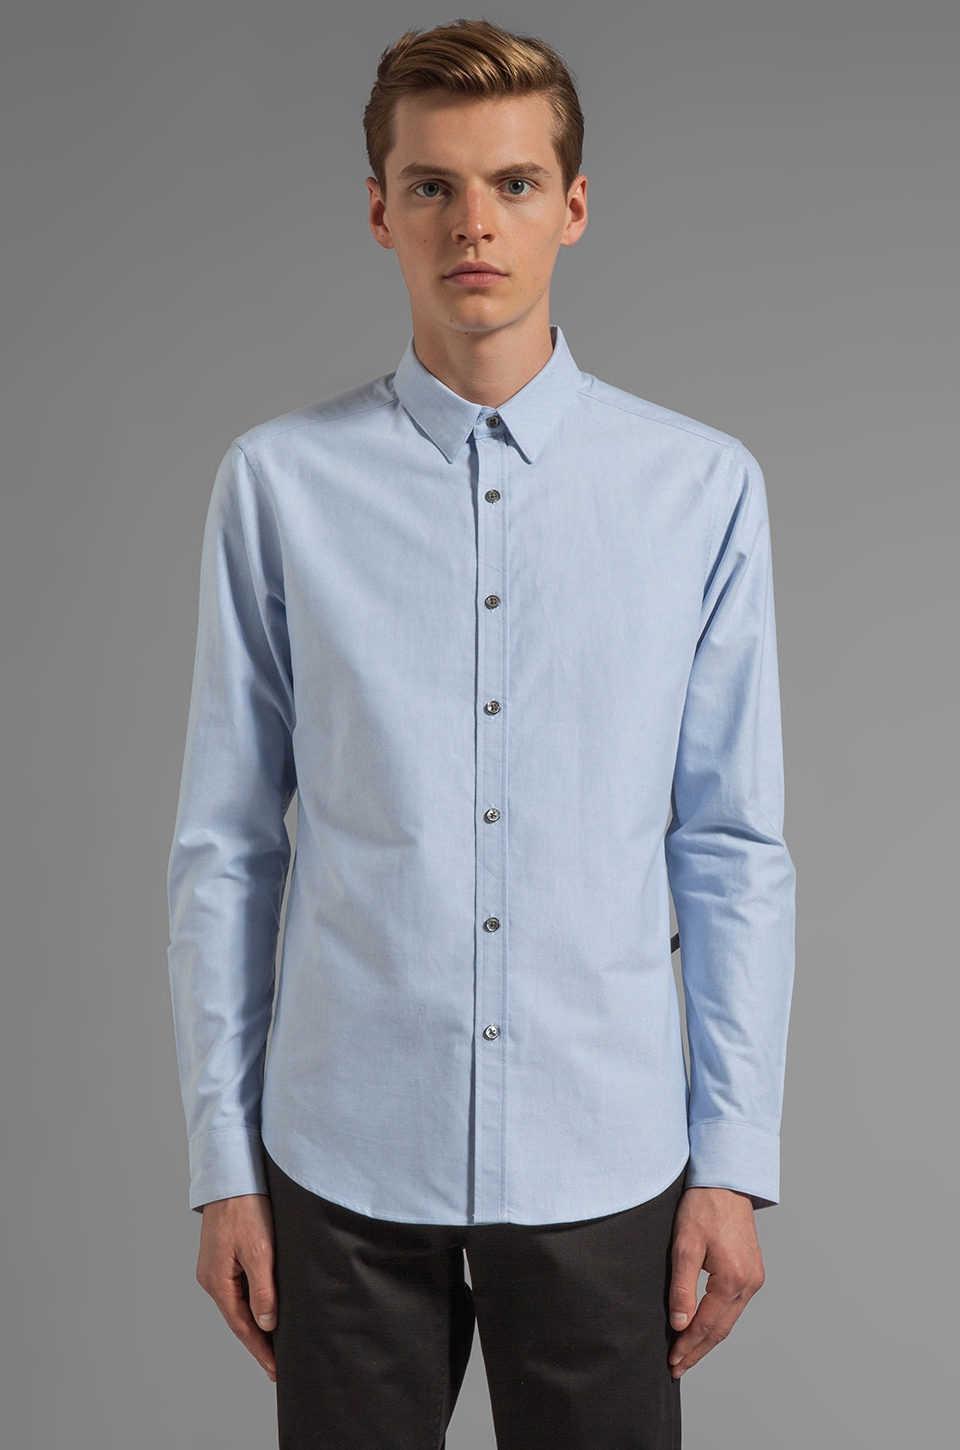 Theory Zack PS Button Down in Light Blue